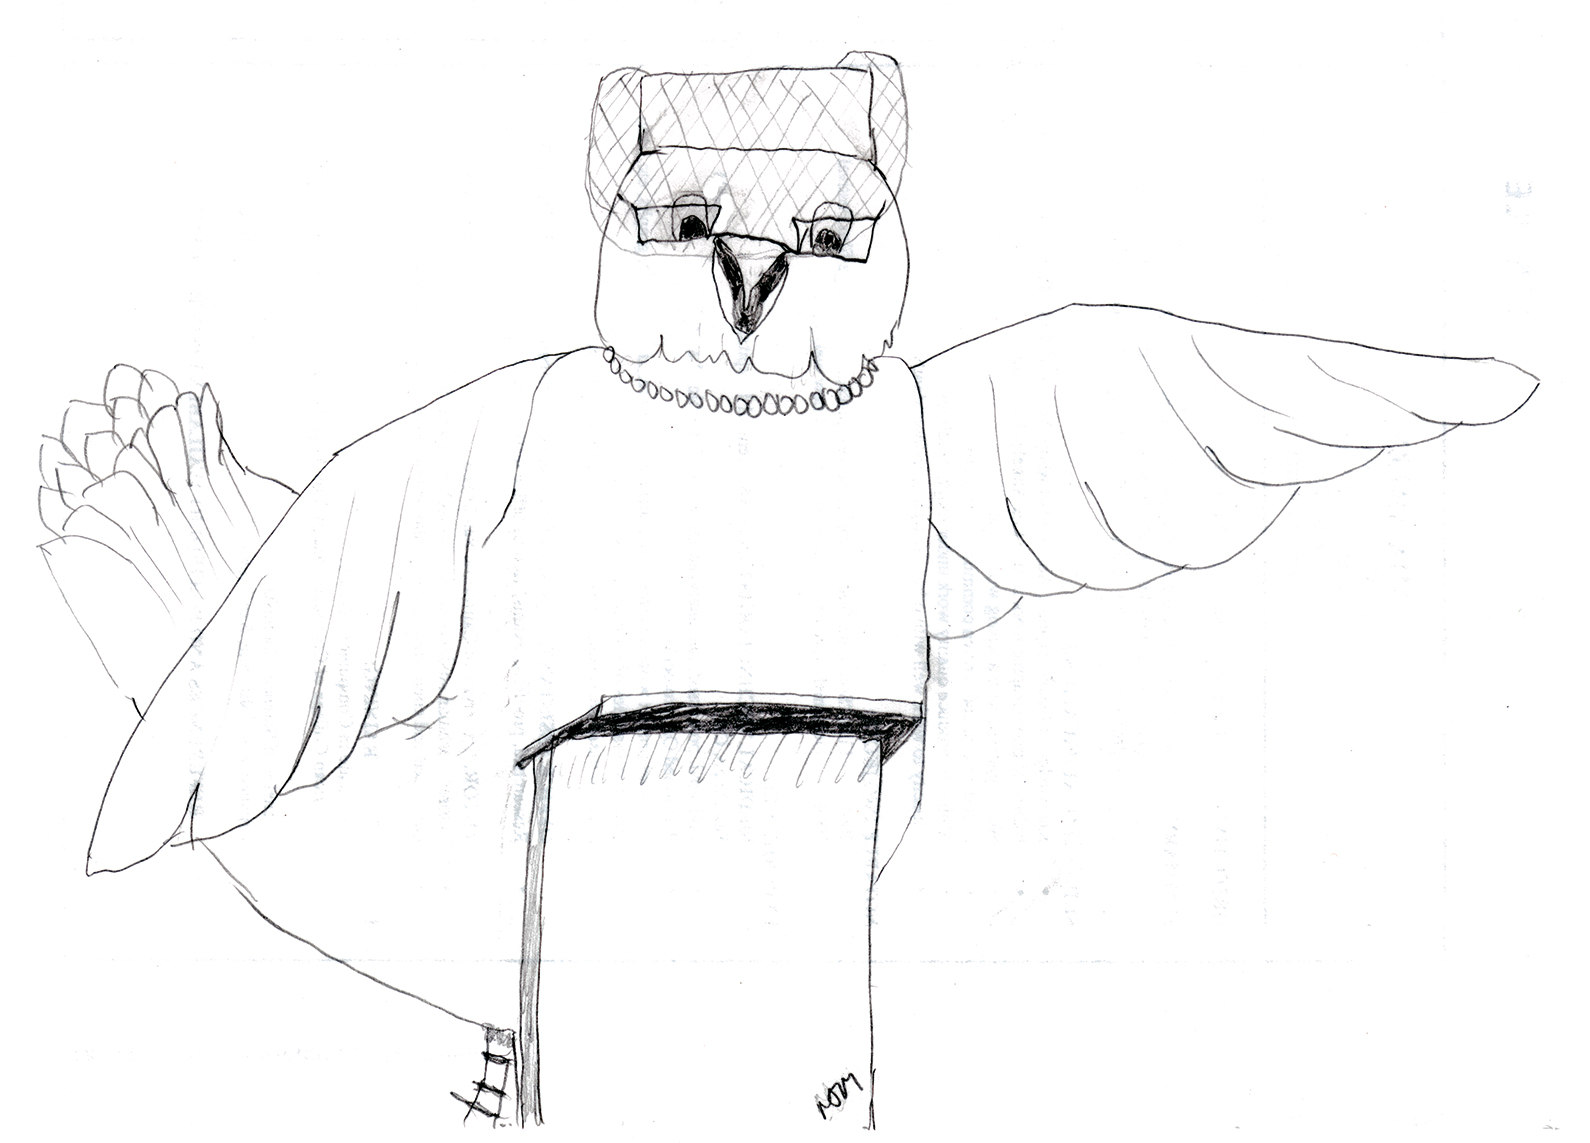 Sketch of a chicken standing at a podium wearing a pillbox hat and pearls.